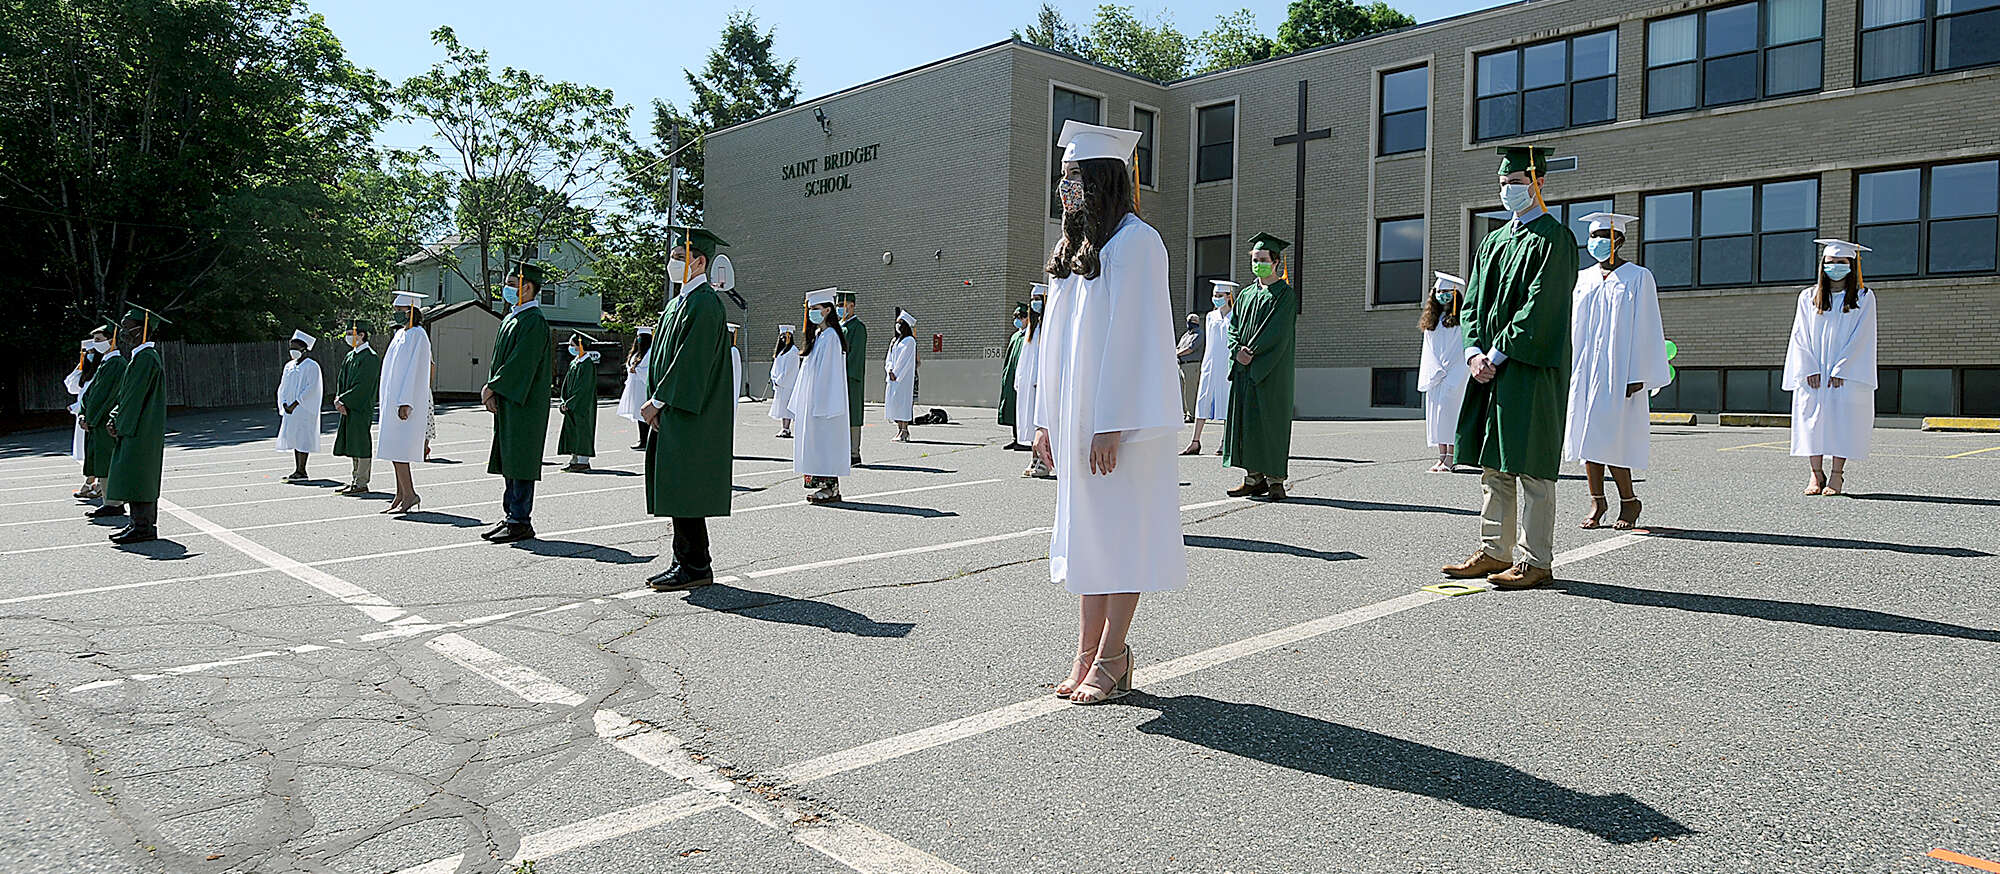 6/4/20-- FRAMINGHAM-- Saint Bridget School held a physically distanced outdoor graduation for 27 eighth grade graduates Thursday morning. [Daily News and Wicked Local Staff Photo/Art Illman]